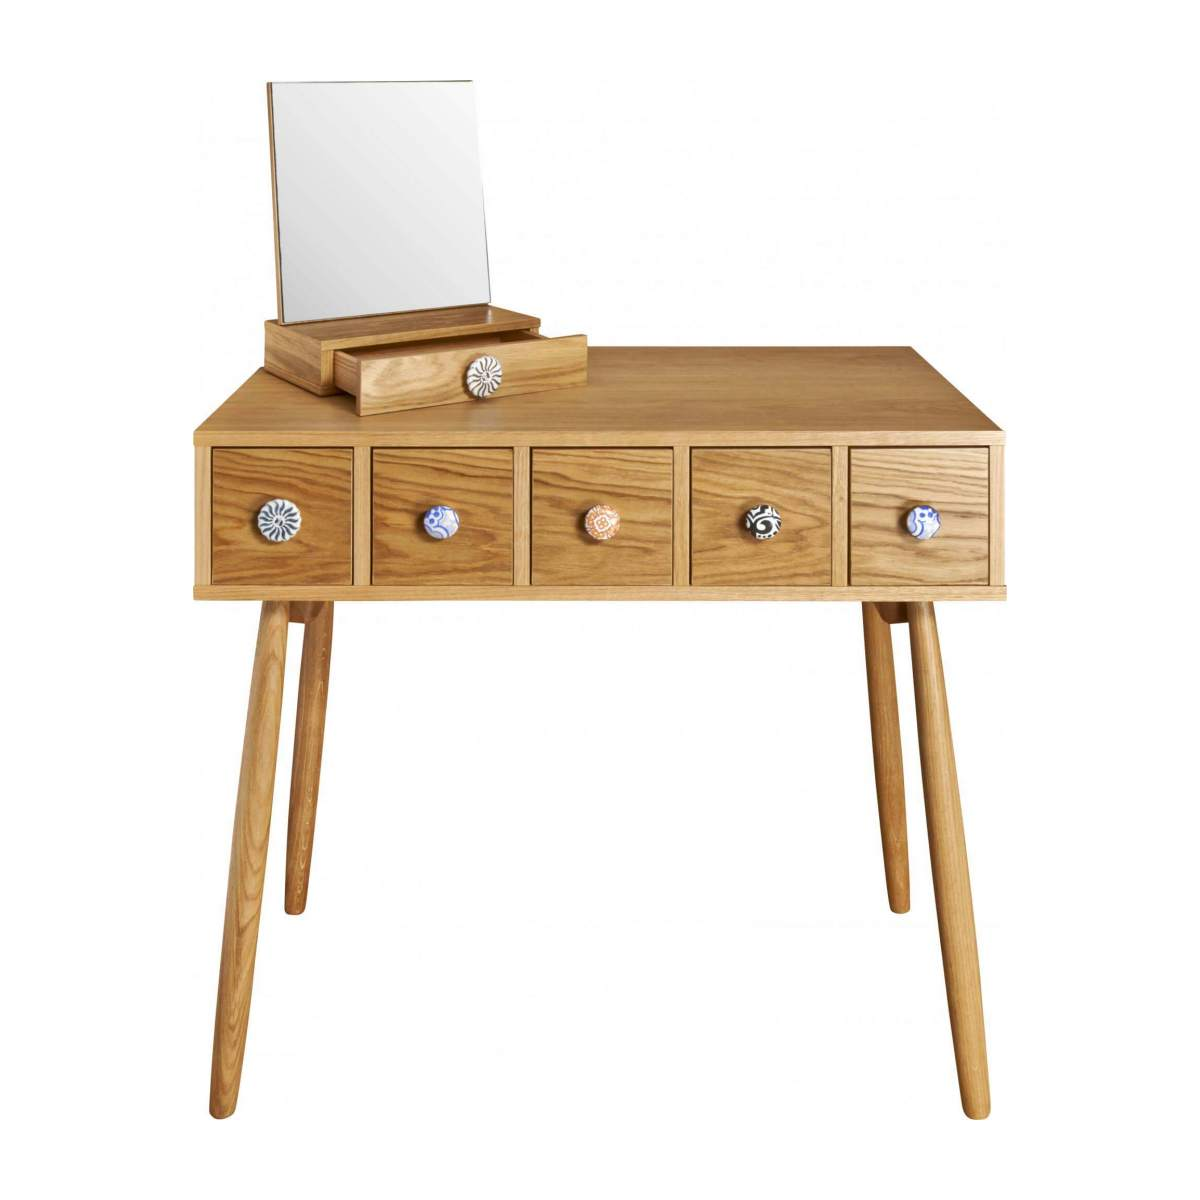 Mirrored 5 drawer dressing table n°7